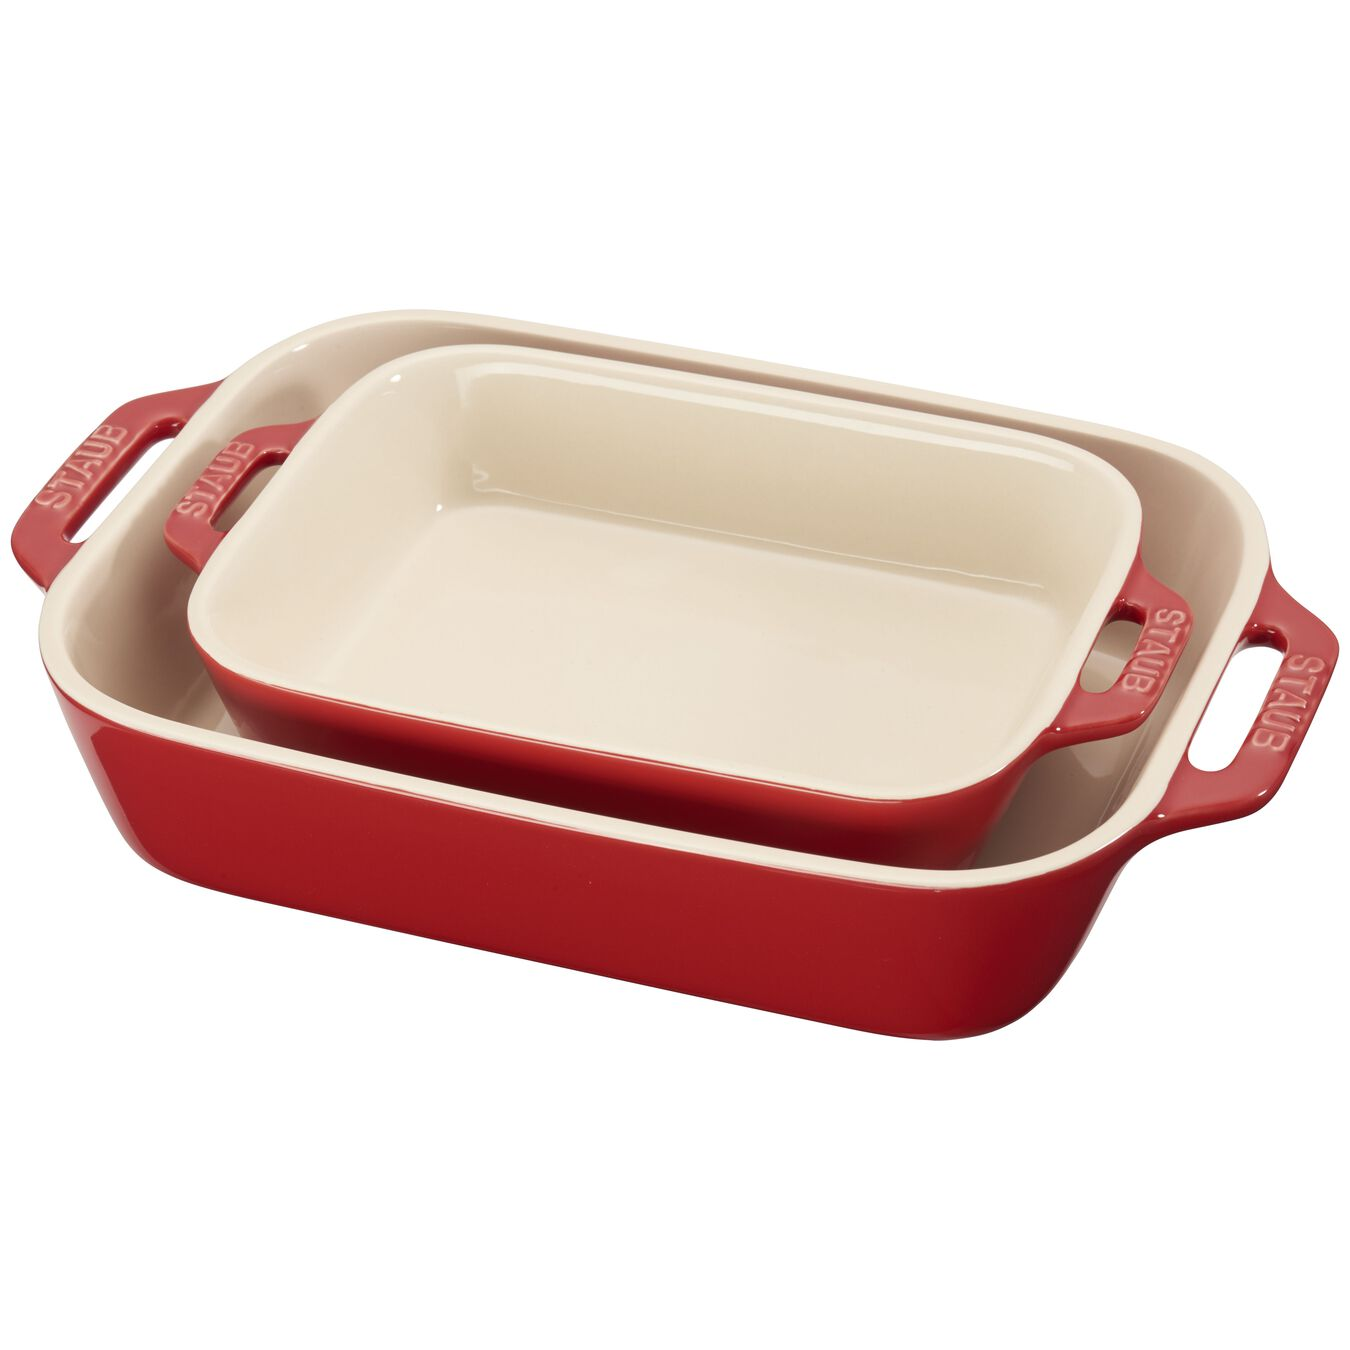 2-pc Rectangular Baking Dish Set - Cherry,,large 1